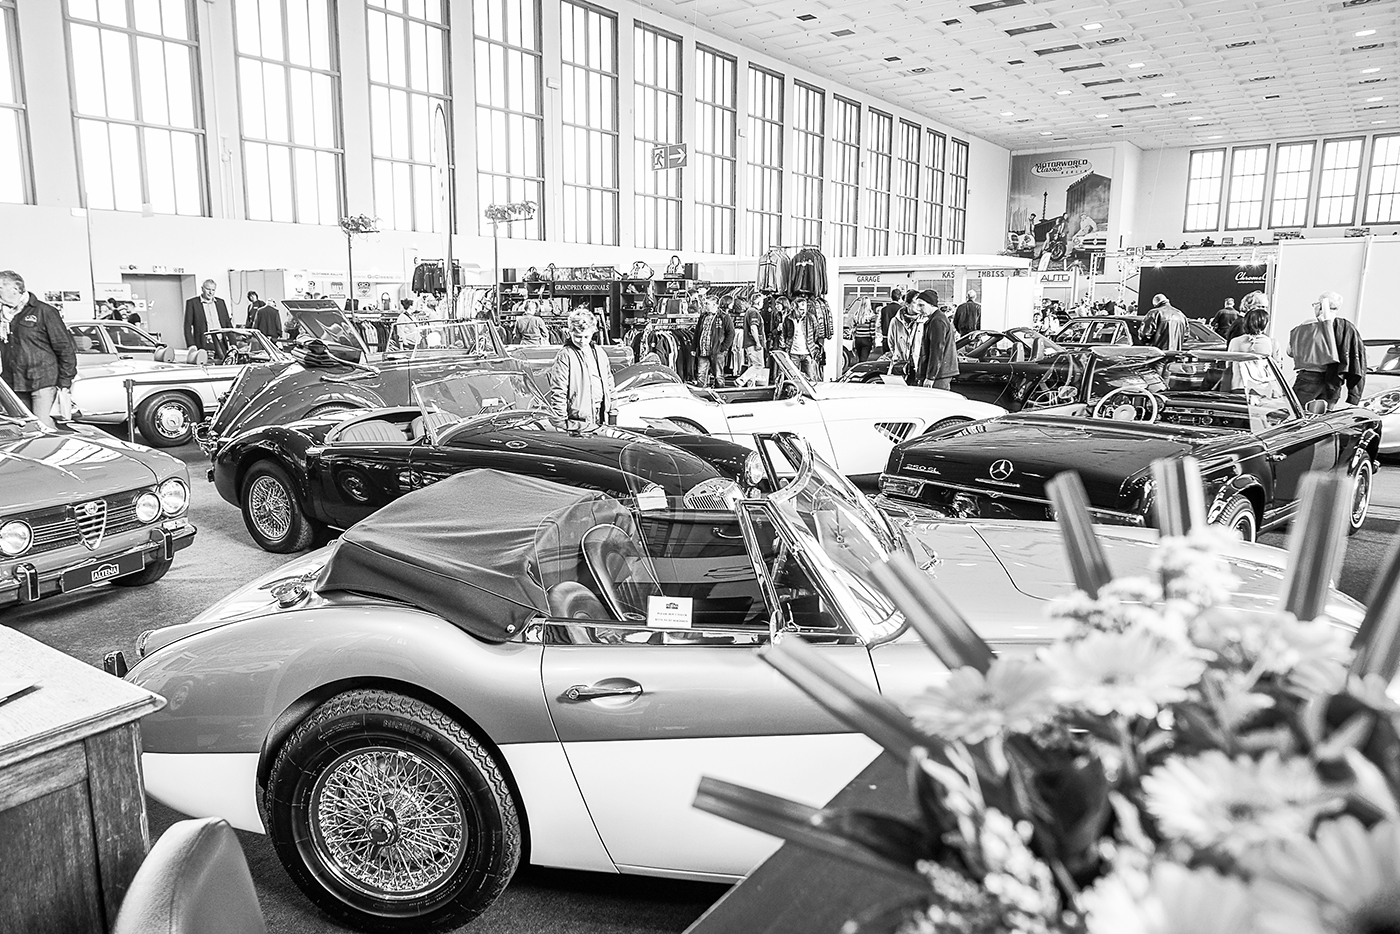 (DE) Oldtimer-Messe in Berlin